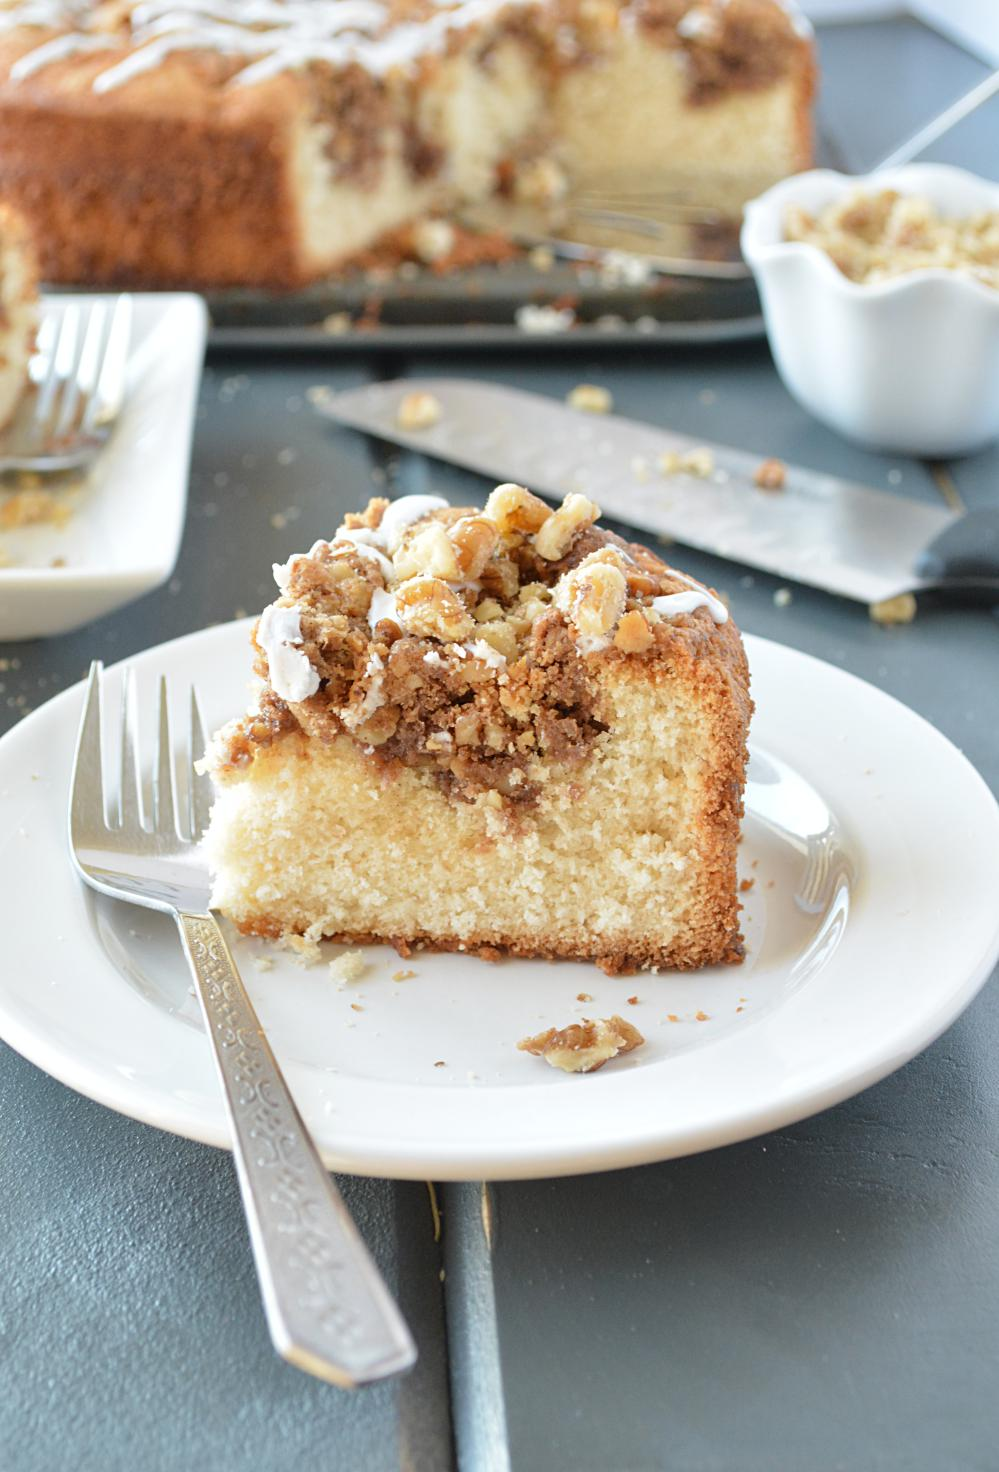 Walnut Crumble Coffee Cake